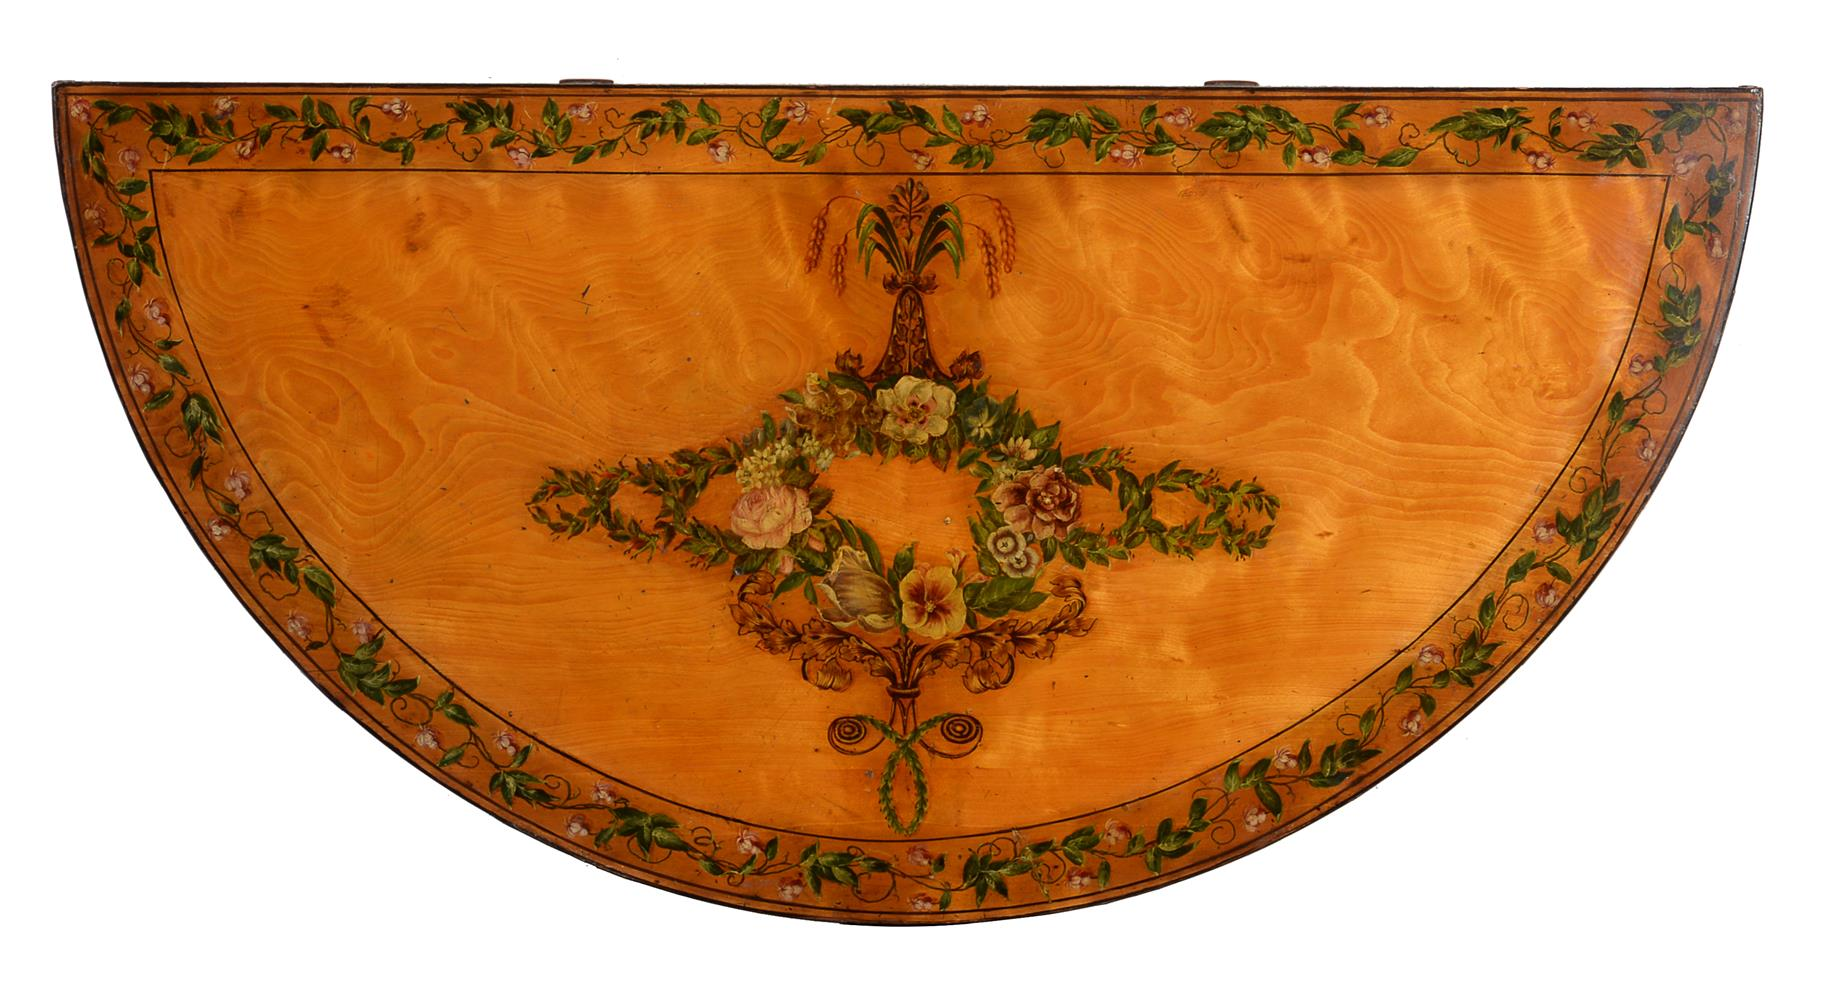 A PAIR OF GEORGE III DECORATED SATINWOOD CARD TABLES, CIRCA 1810 - Image 7 of 8